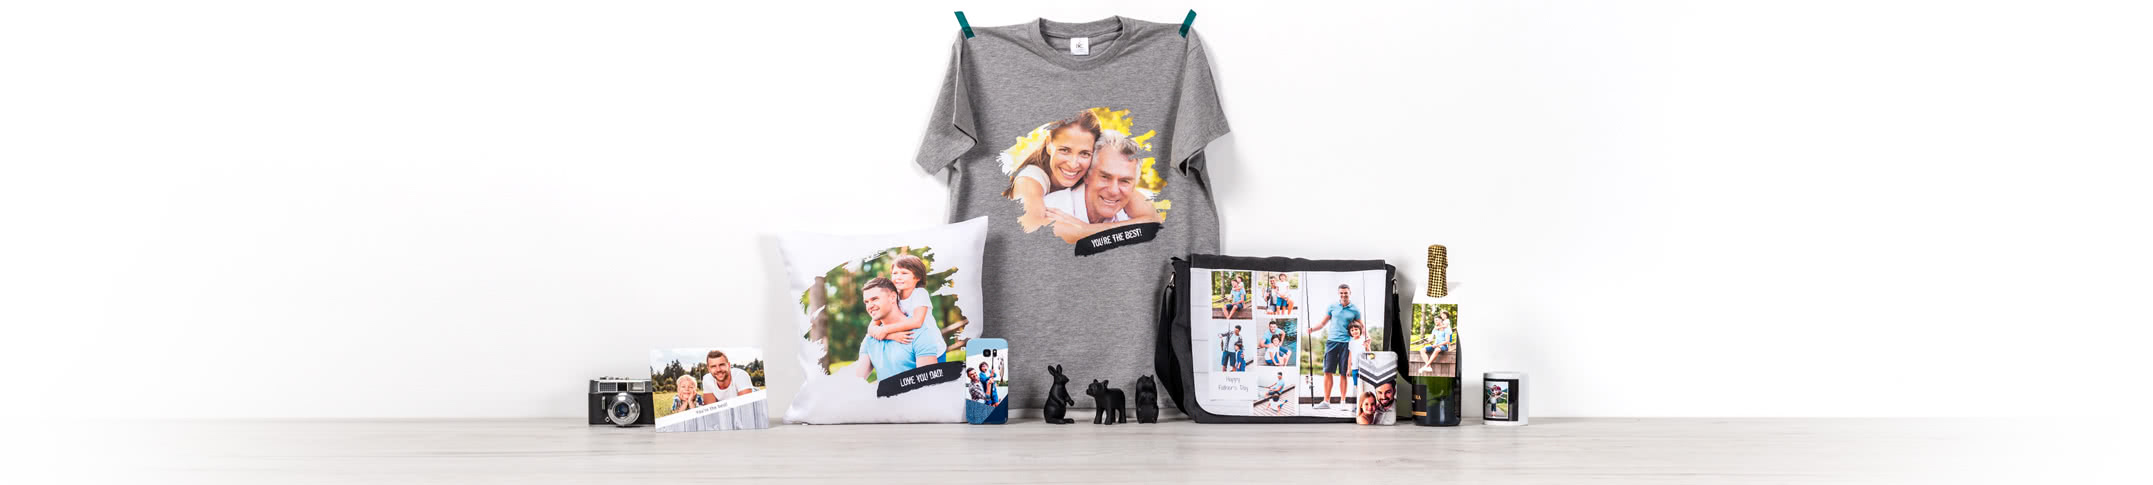 Personalised gift ideas for Father's Day - Give your dad something really special this year!